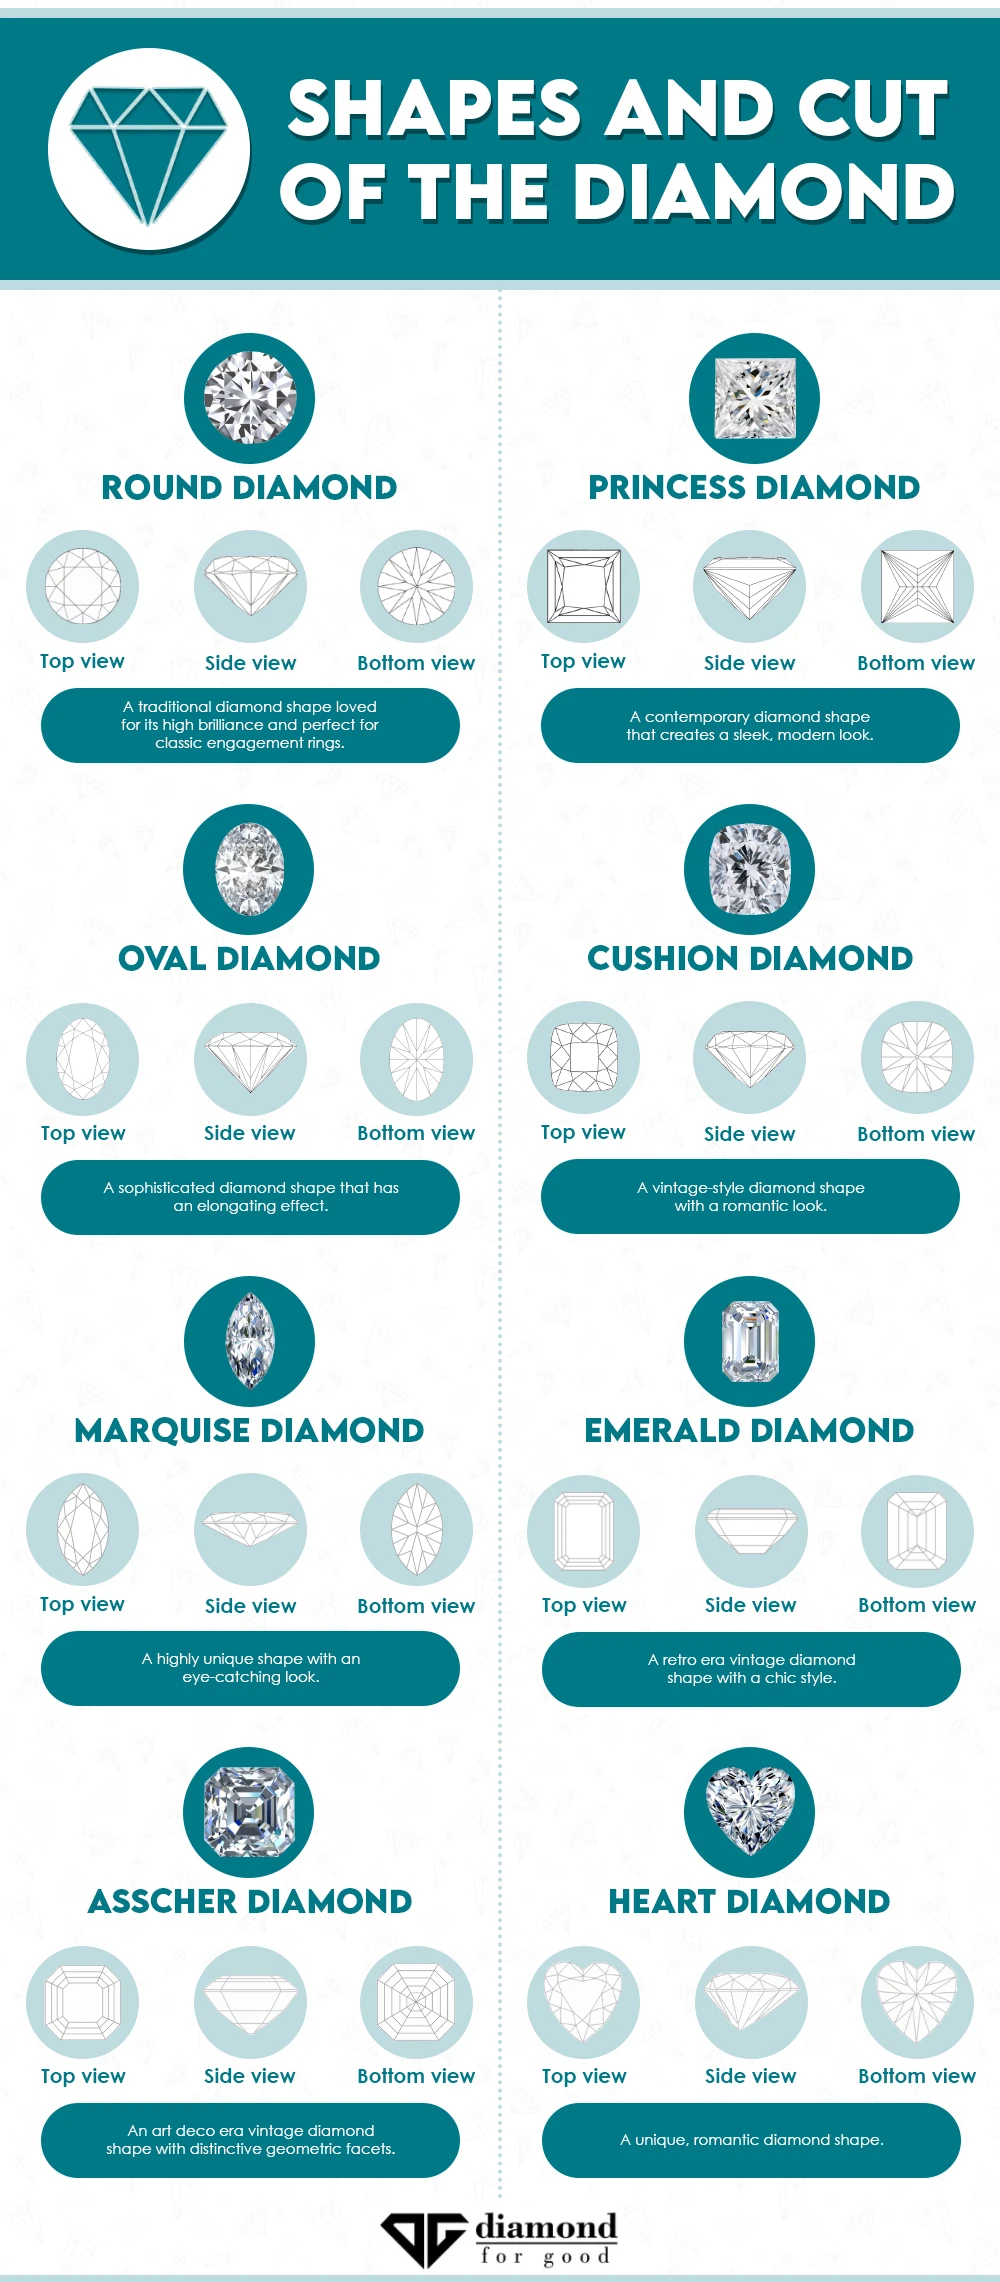 Shapes And Cut Of The Diamond